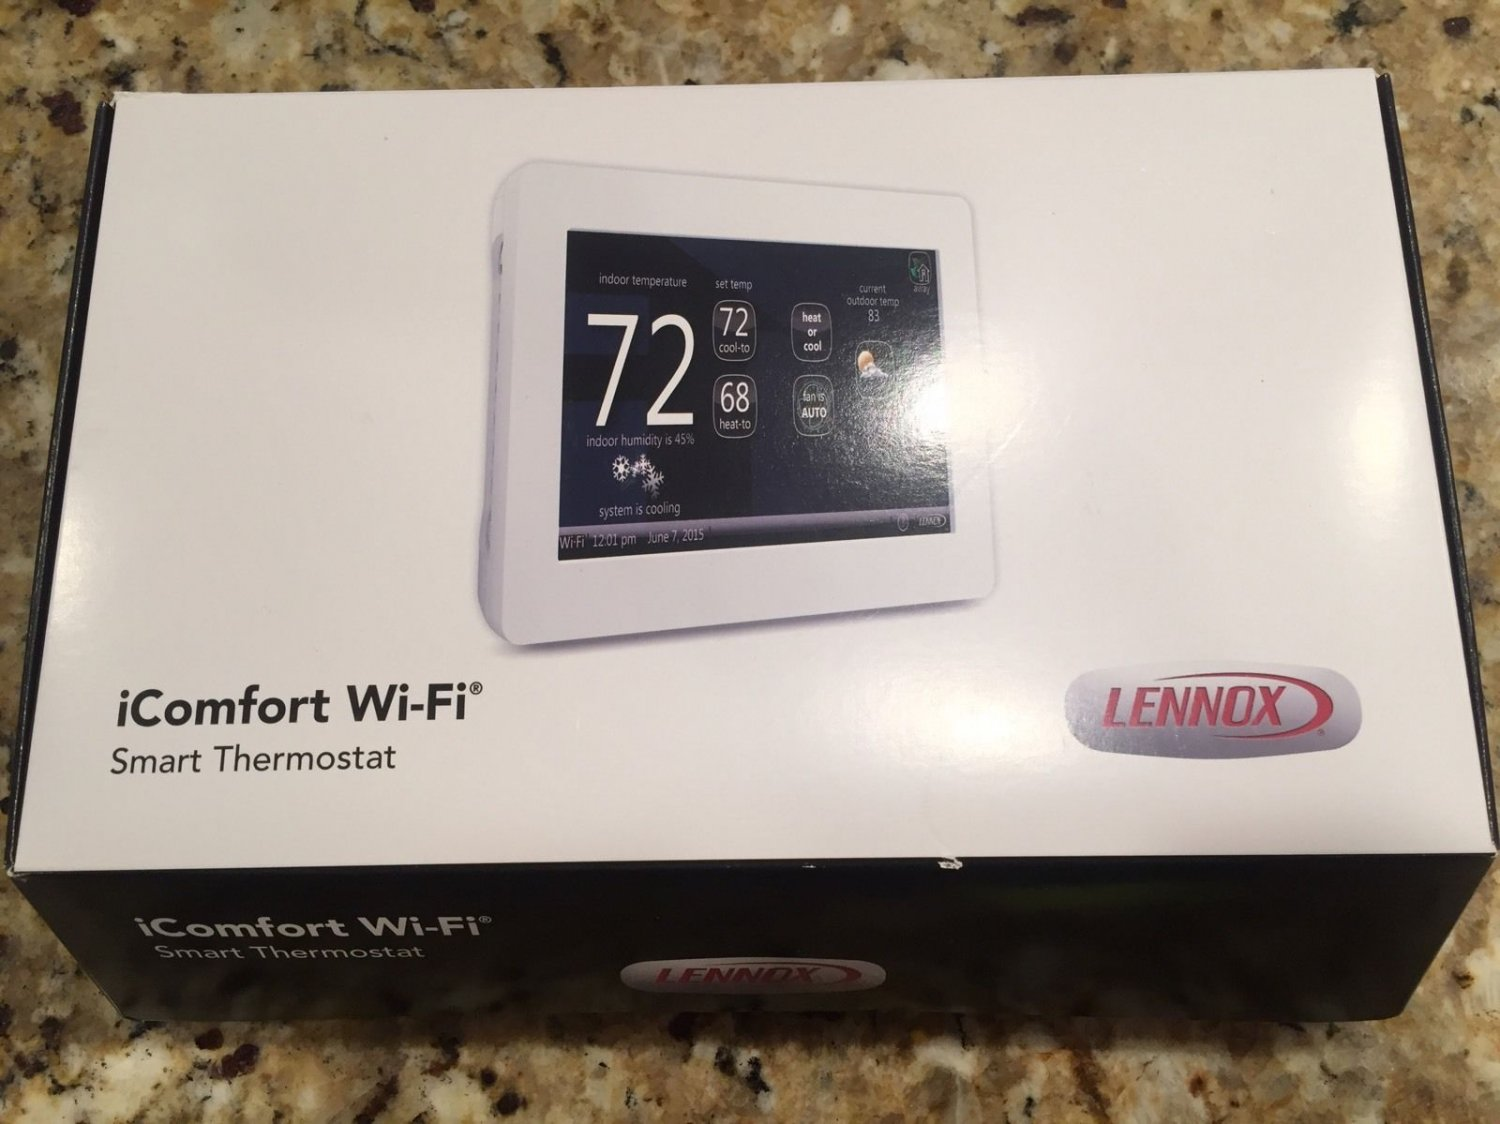 10f81 Lennox Icomfort Touchscreen 10f81 Thermostat With Wifi